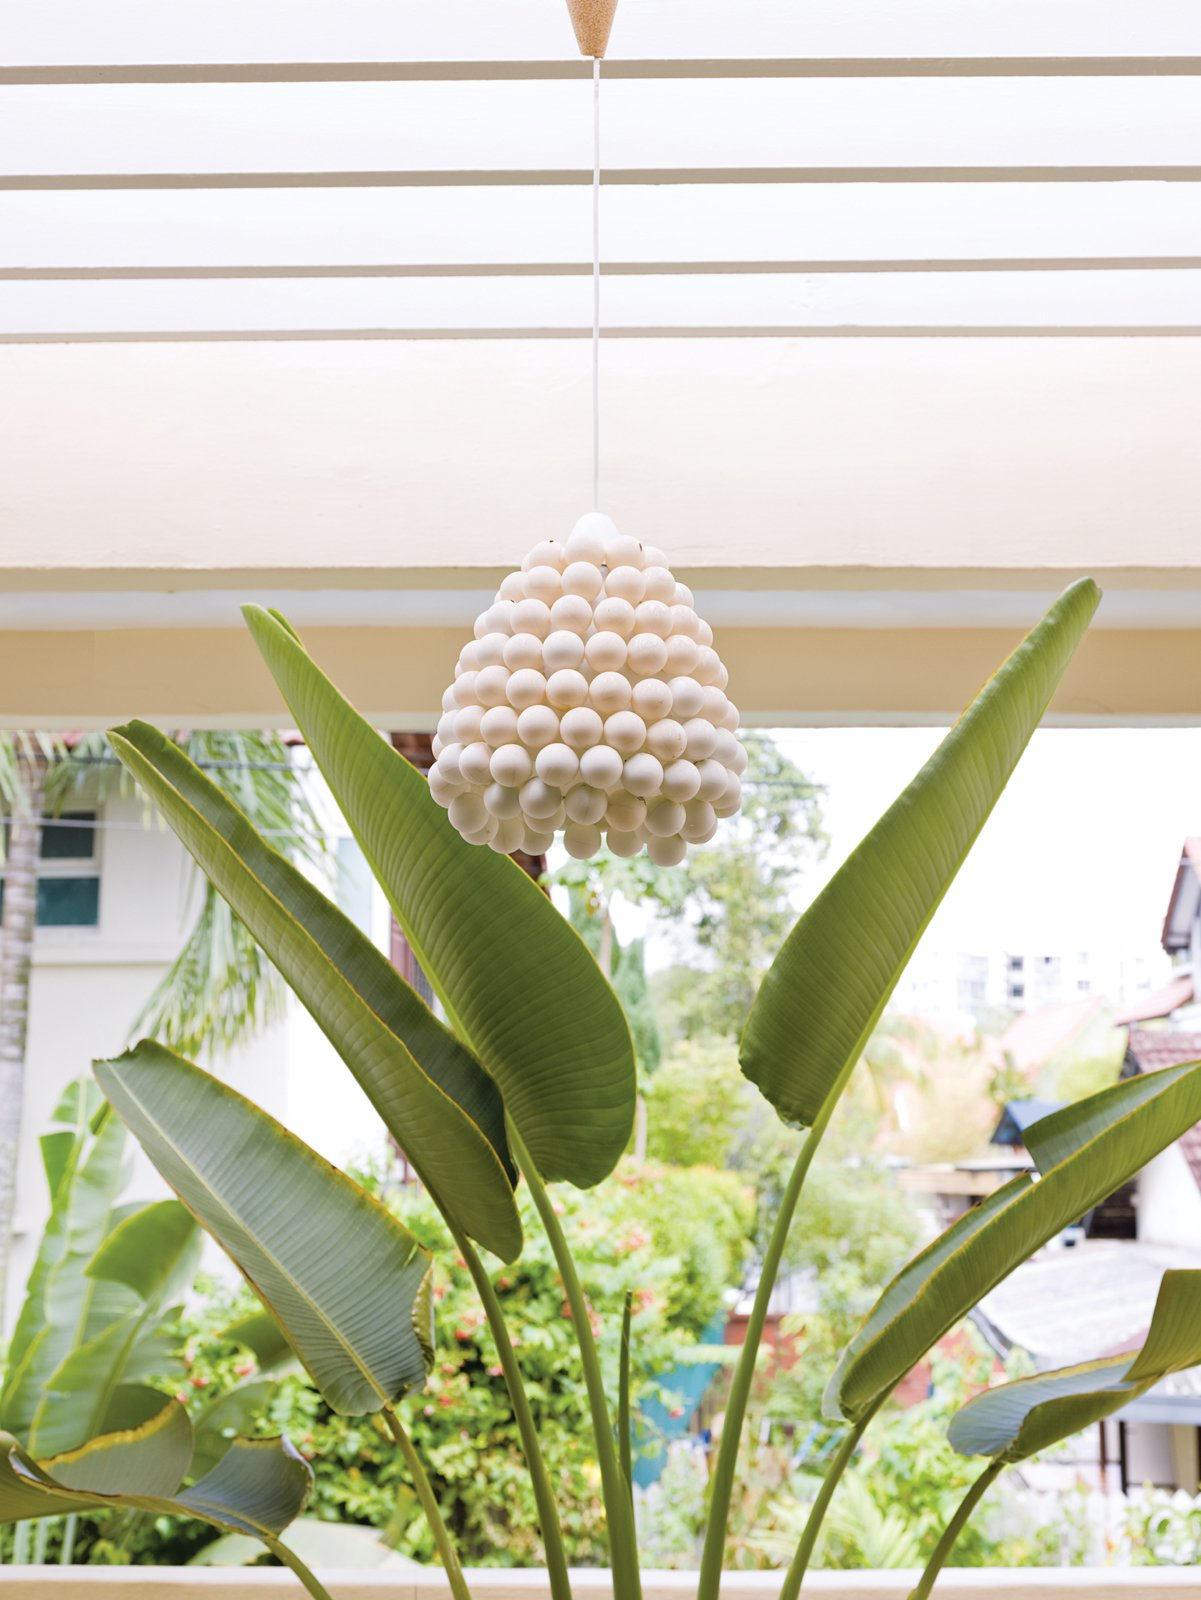 """One of the first things De Waart did when they moved in was to remove   all the curtains—–save those on the bedroom windows—–and change the lighting fixtures. """"A nice lamp can add so much extra to a room,"""" she says. De Waart favors organic shapes, like the Evolute by Matali Crasset for Danese Milano in the family room, Arco by the Castiglioni brothers for Flos in the living room, or the ping-pong-ball pendant light of her own design on one of the balconies.  Photo 10 of 11 in A Family Moves from Netherlands to Singapore"""